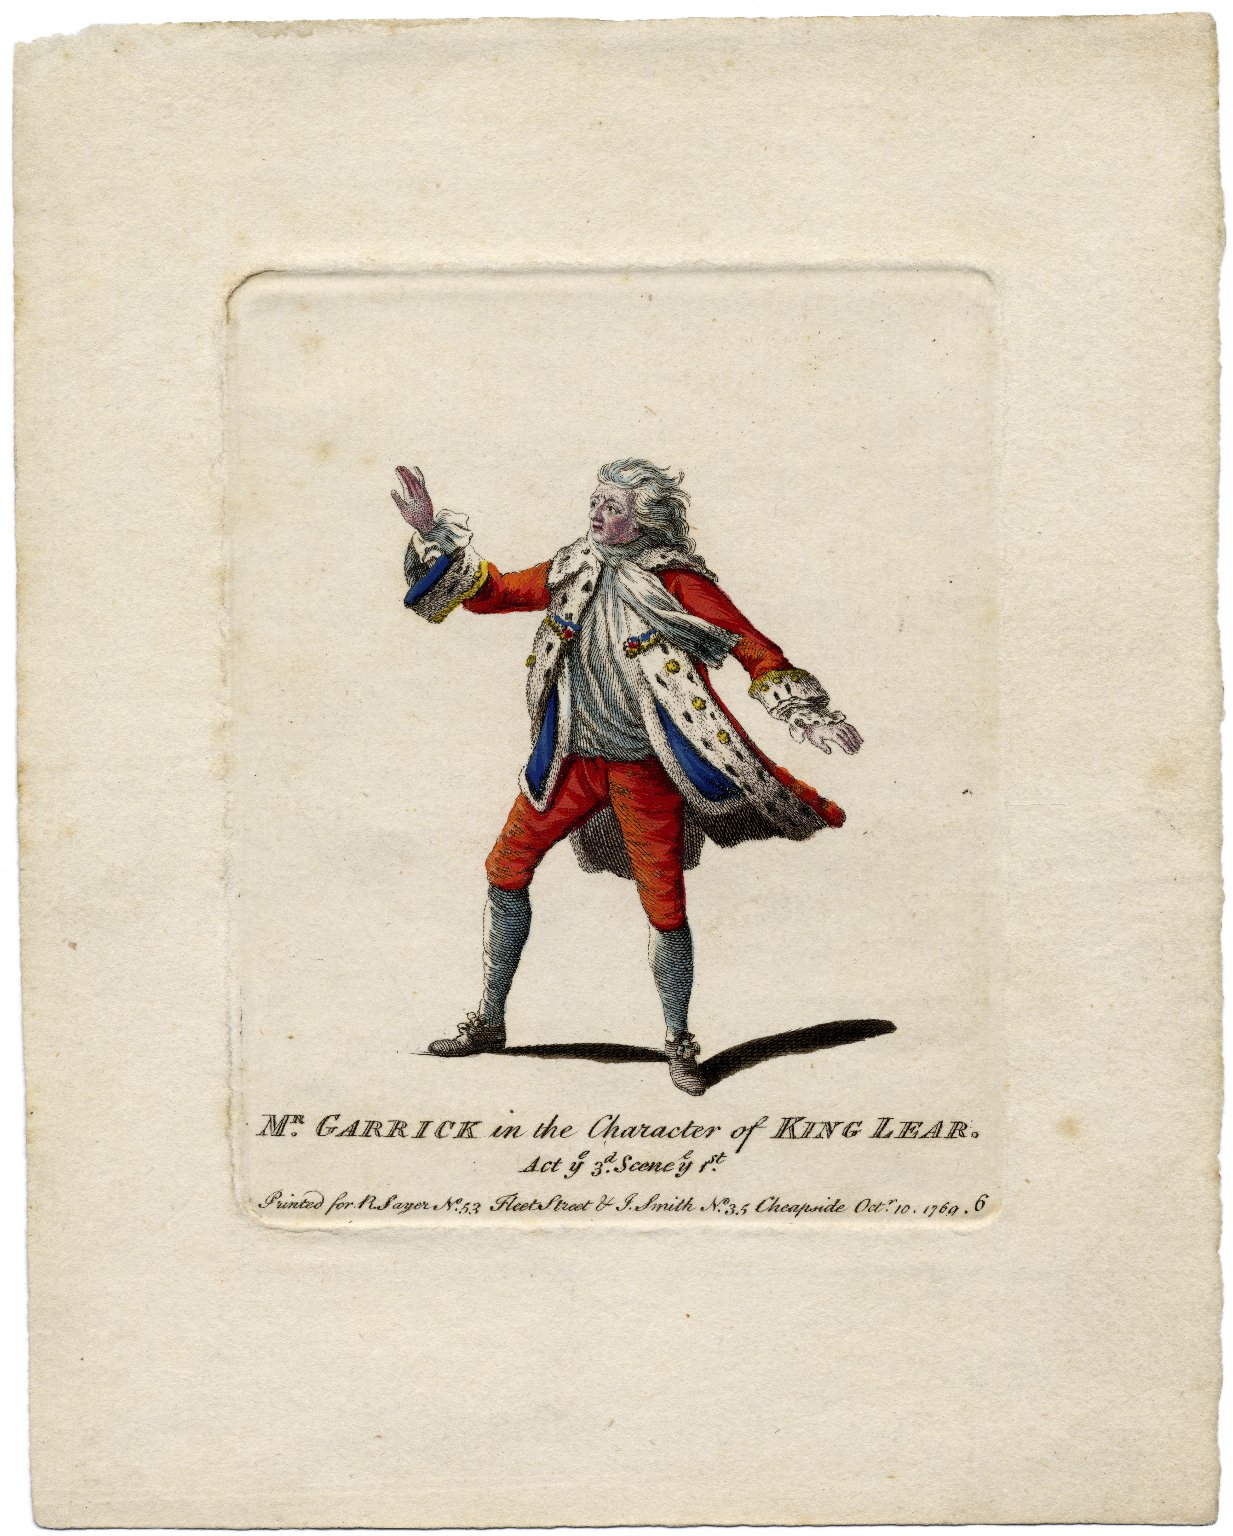 Mr. Garrick in the character of King Lear [in Shakespeare's King Lear], act [the] 3d., scene [the] 1st [graphic].